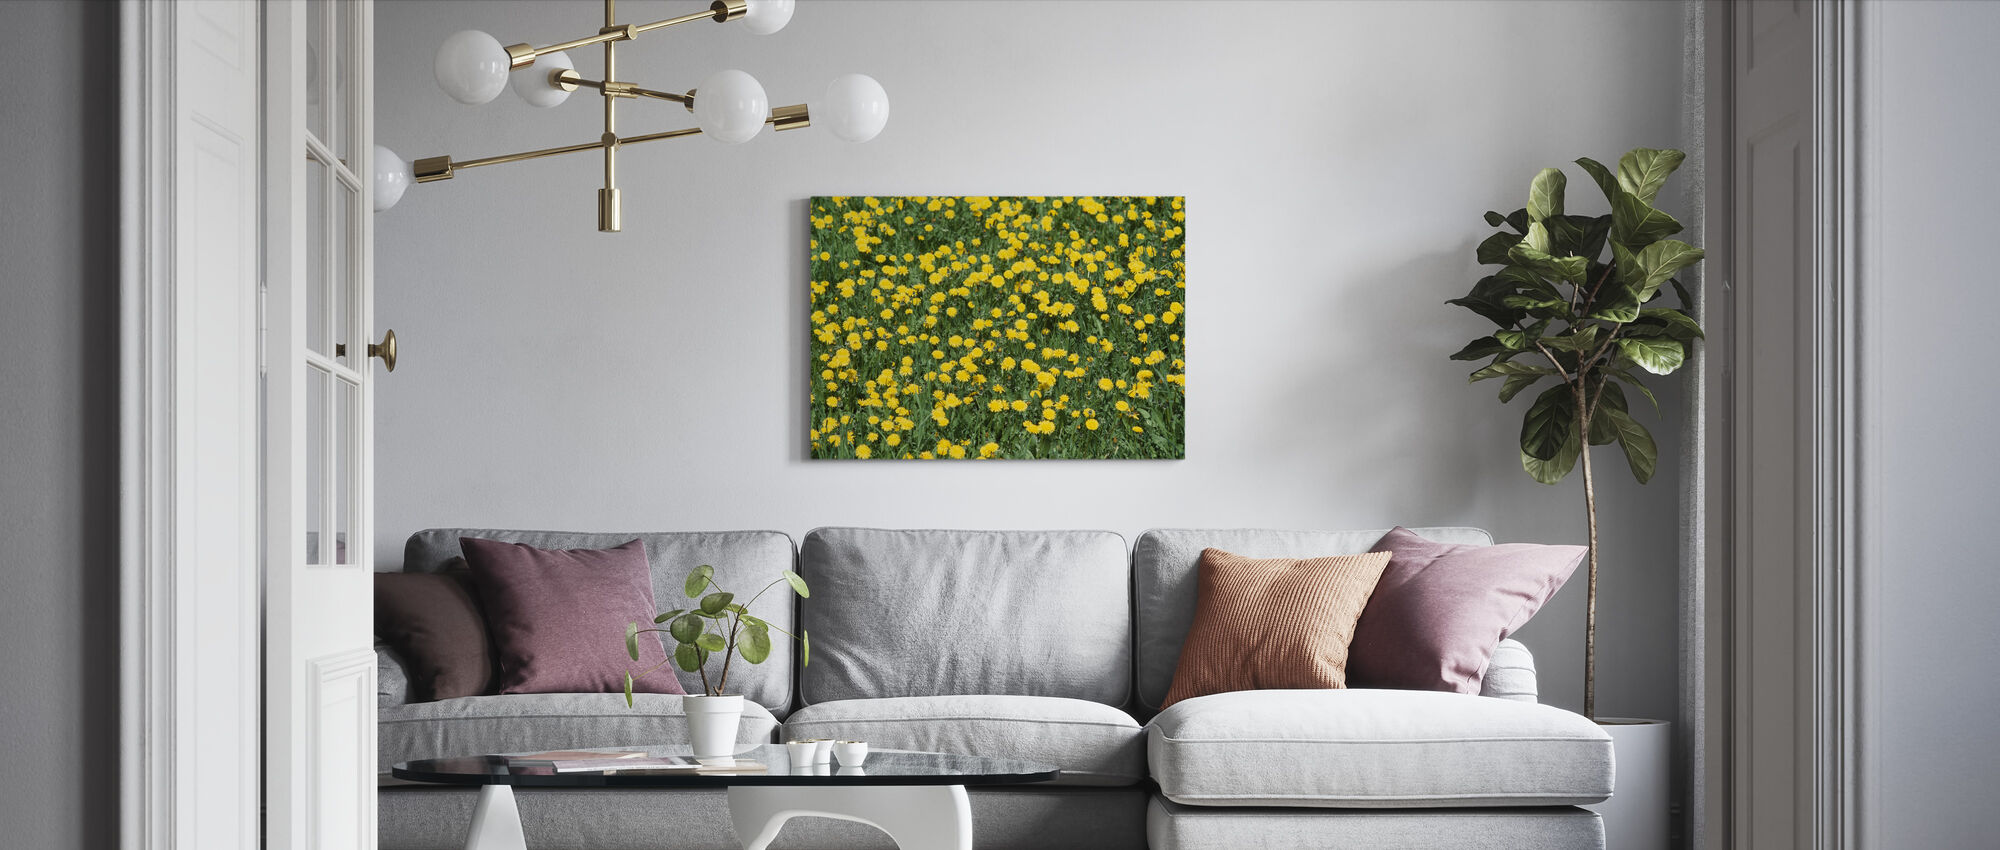 Dandelion and Grass - Canvas print - Living Room